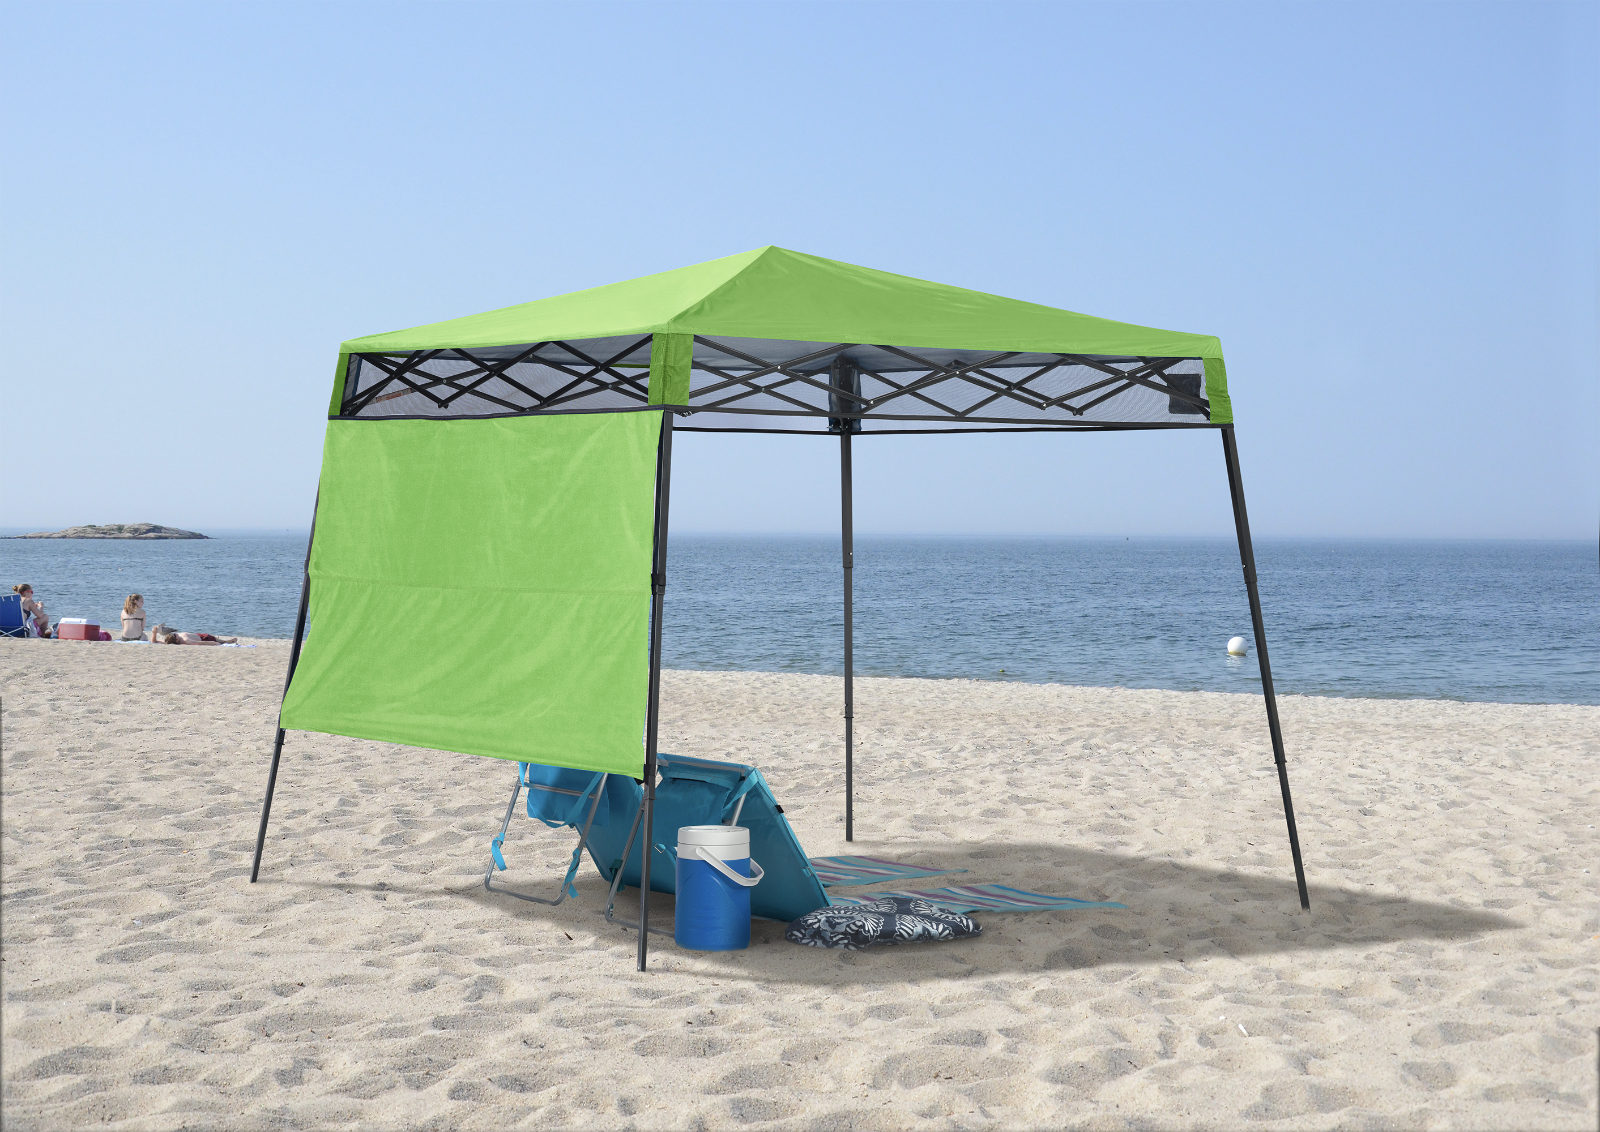 Shelter Logic Quik Shade Compact 6' X 6' Lime verde Backpack Canopy 157434